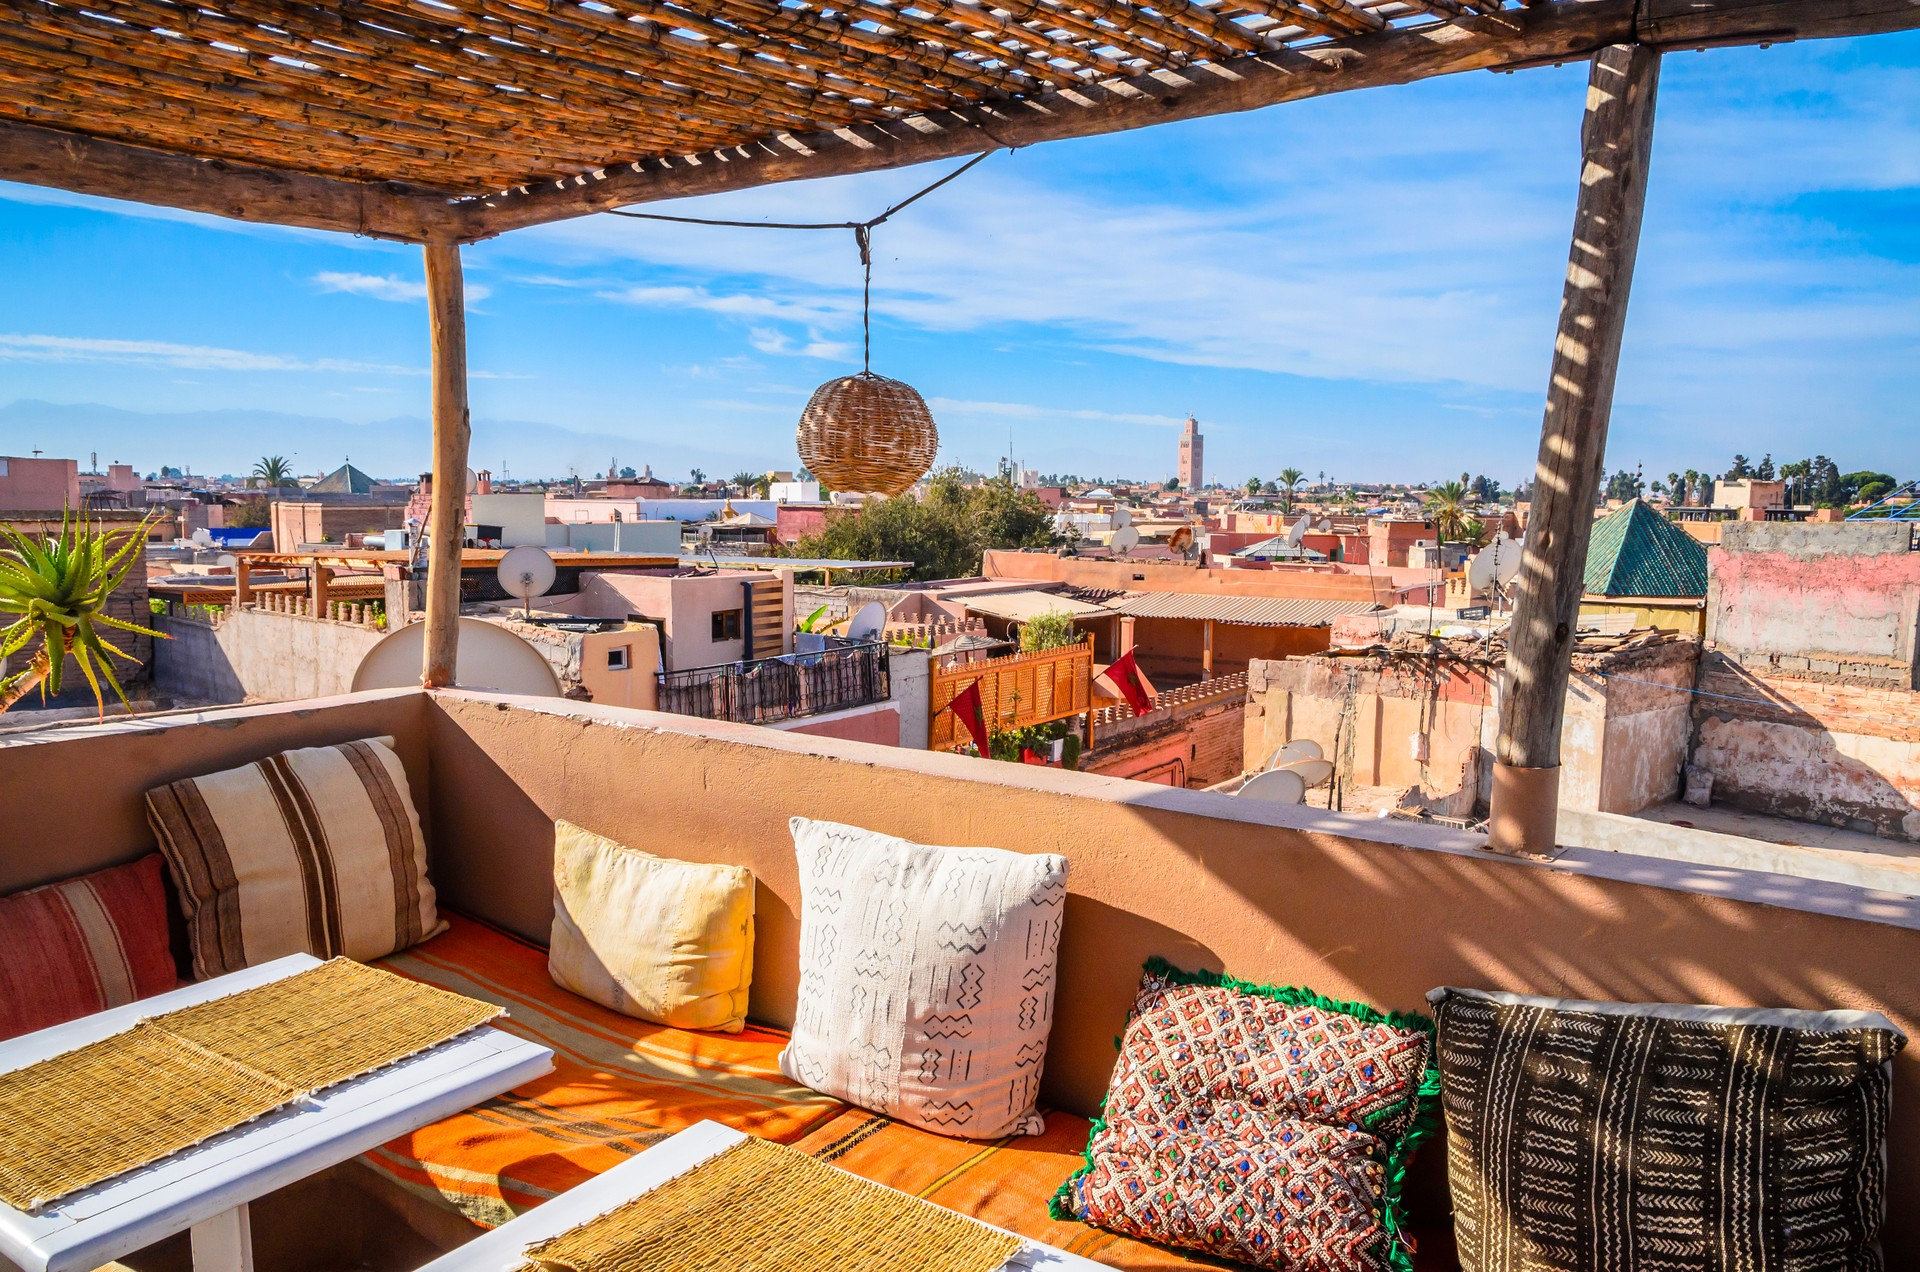 A panoramic view across Marrakech from a traditional Moroccan cafe